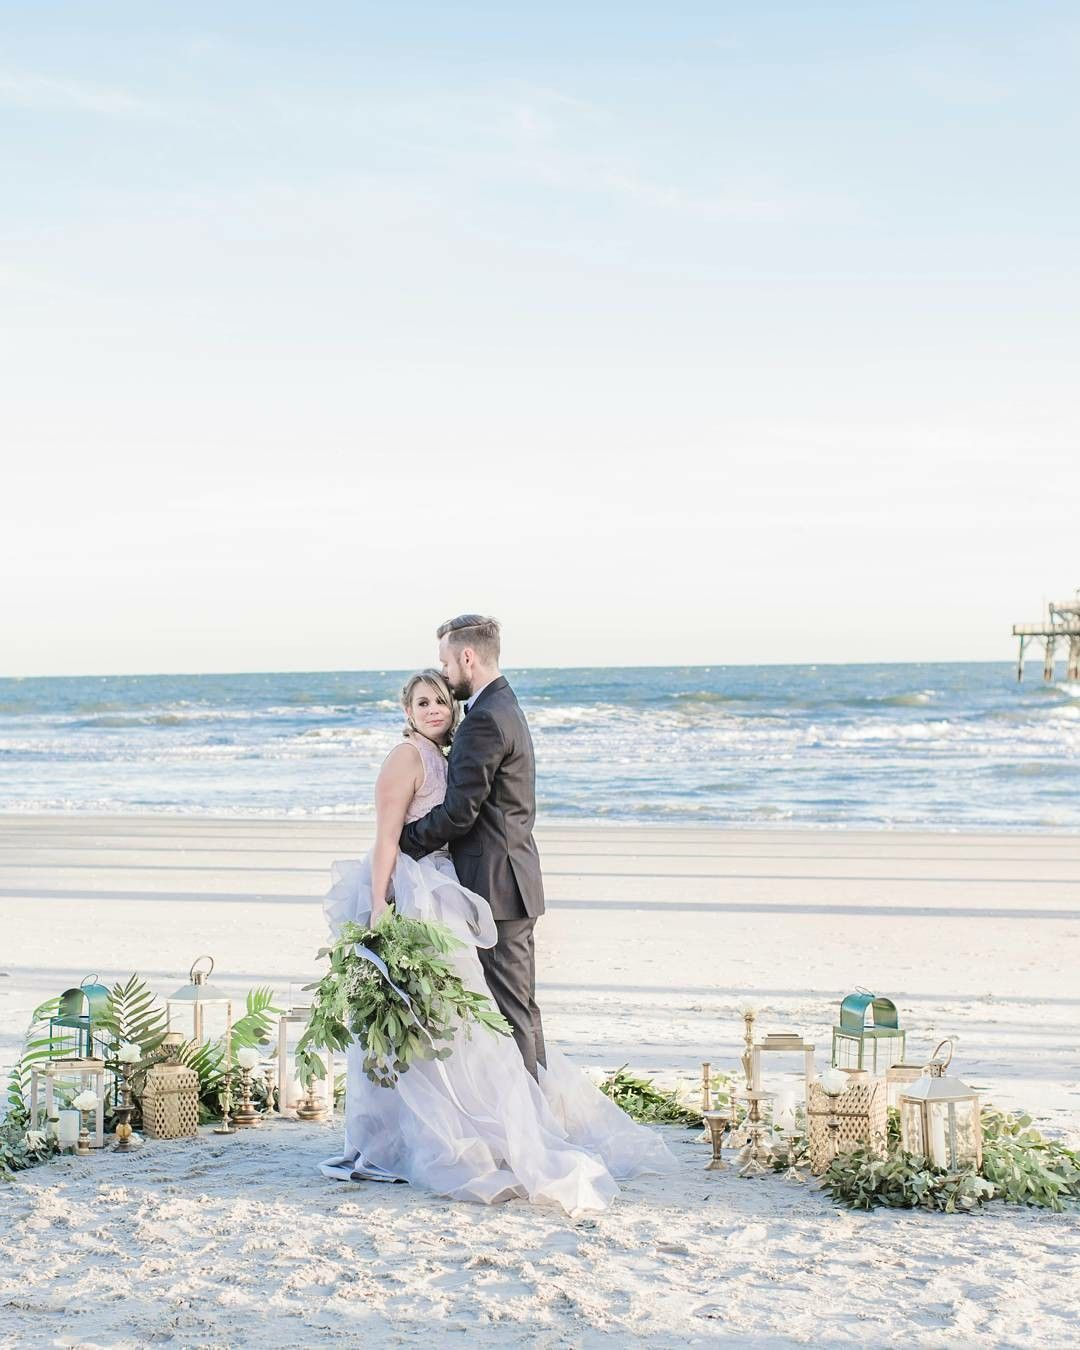 elopement on the beaches of Myrtle Beach, SC